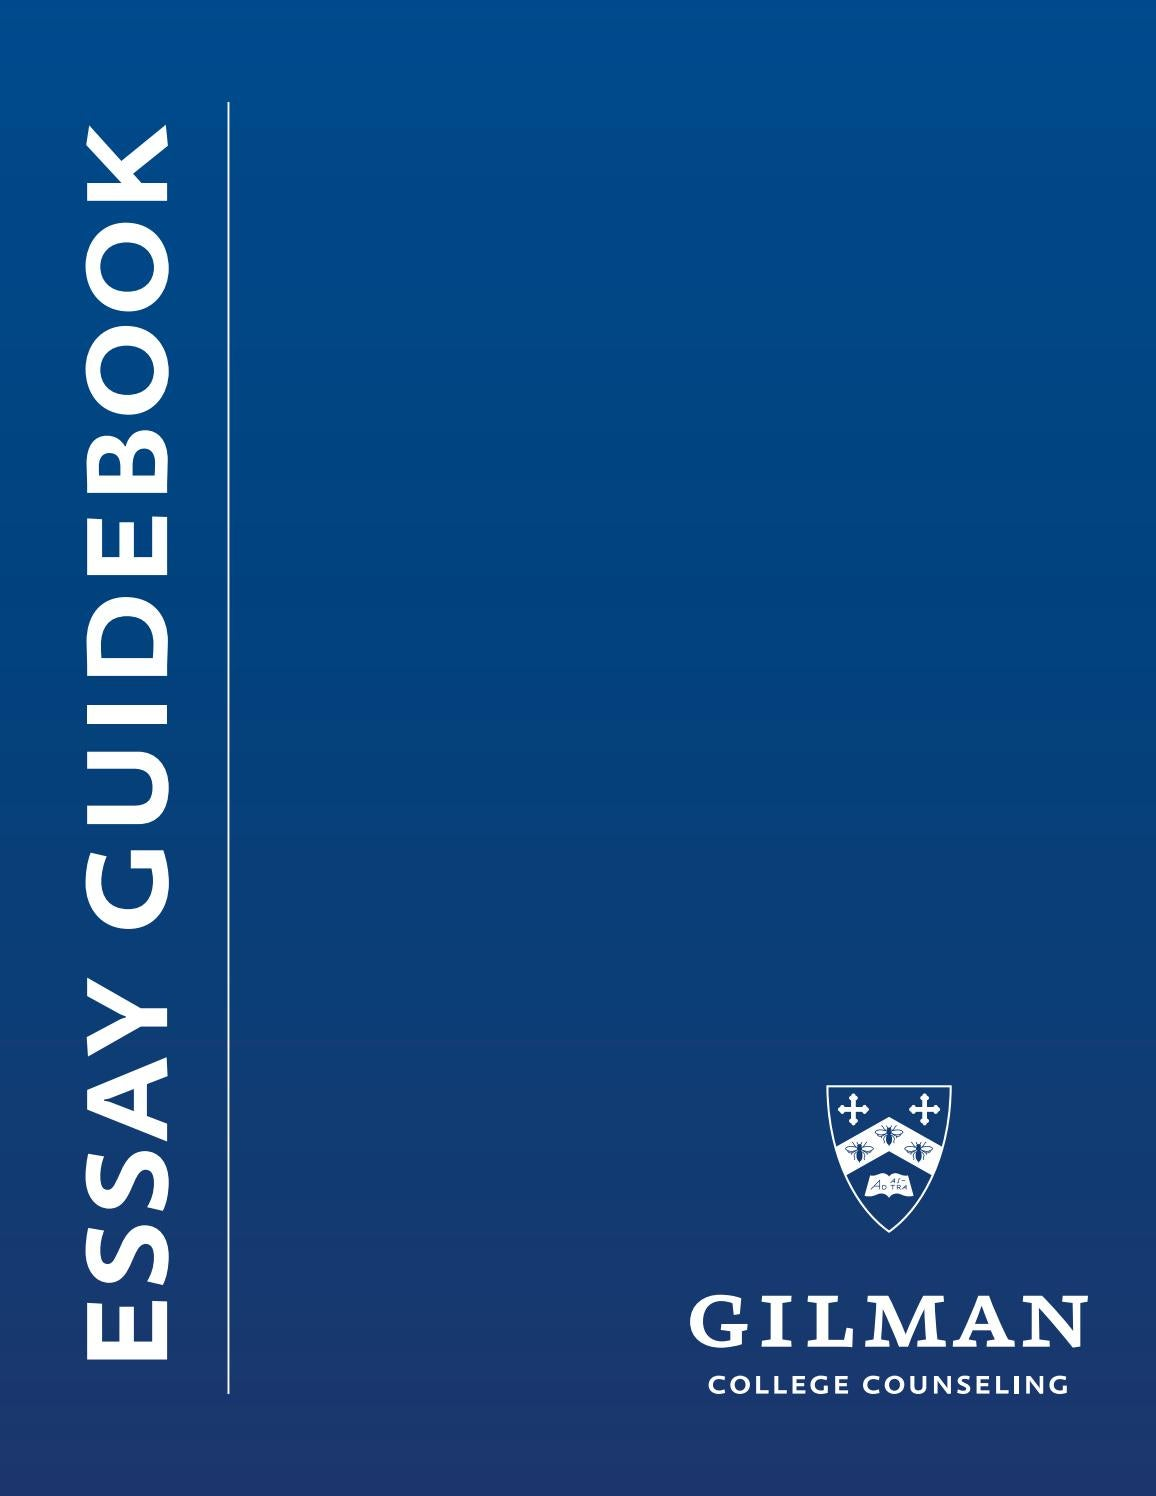 gilman school college counseling essay guidebook by gilman school  gilman school college counseling essay guidebook by gilman school issuu